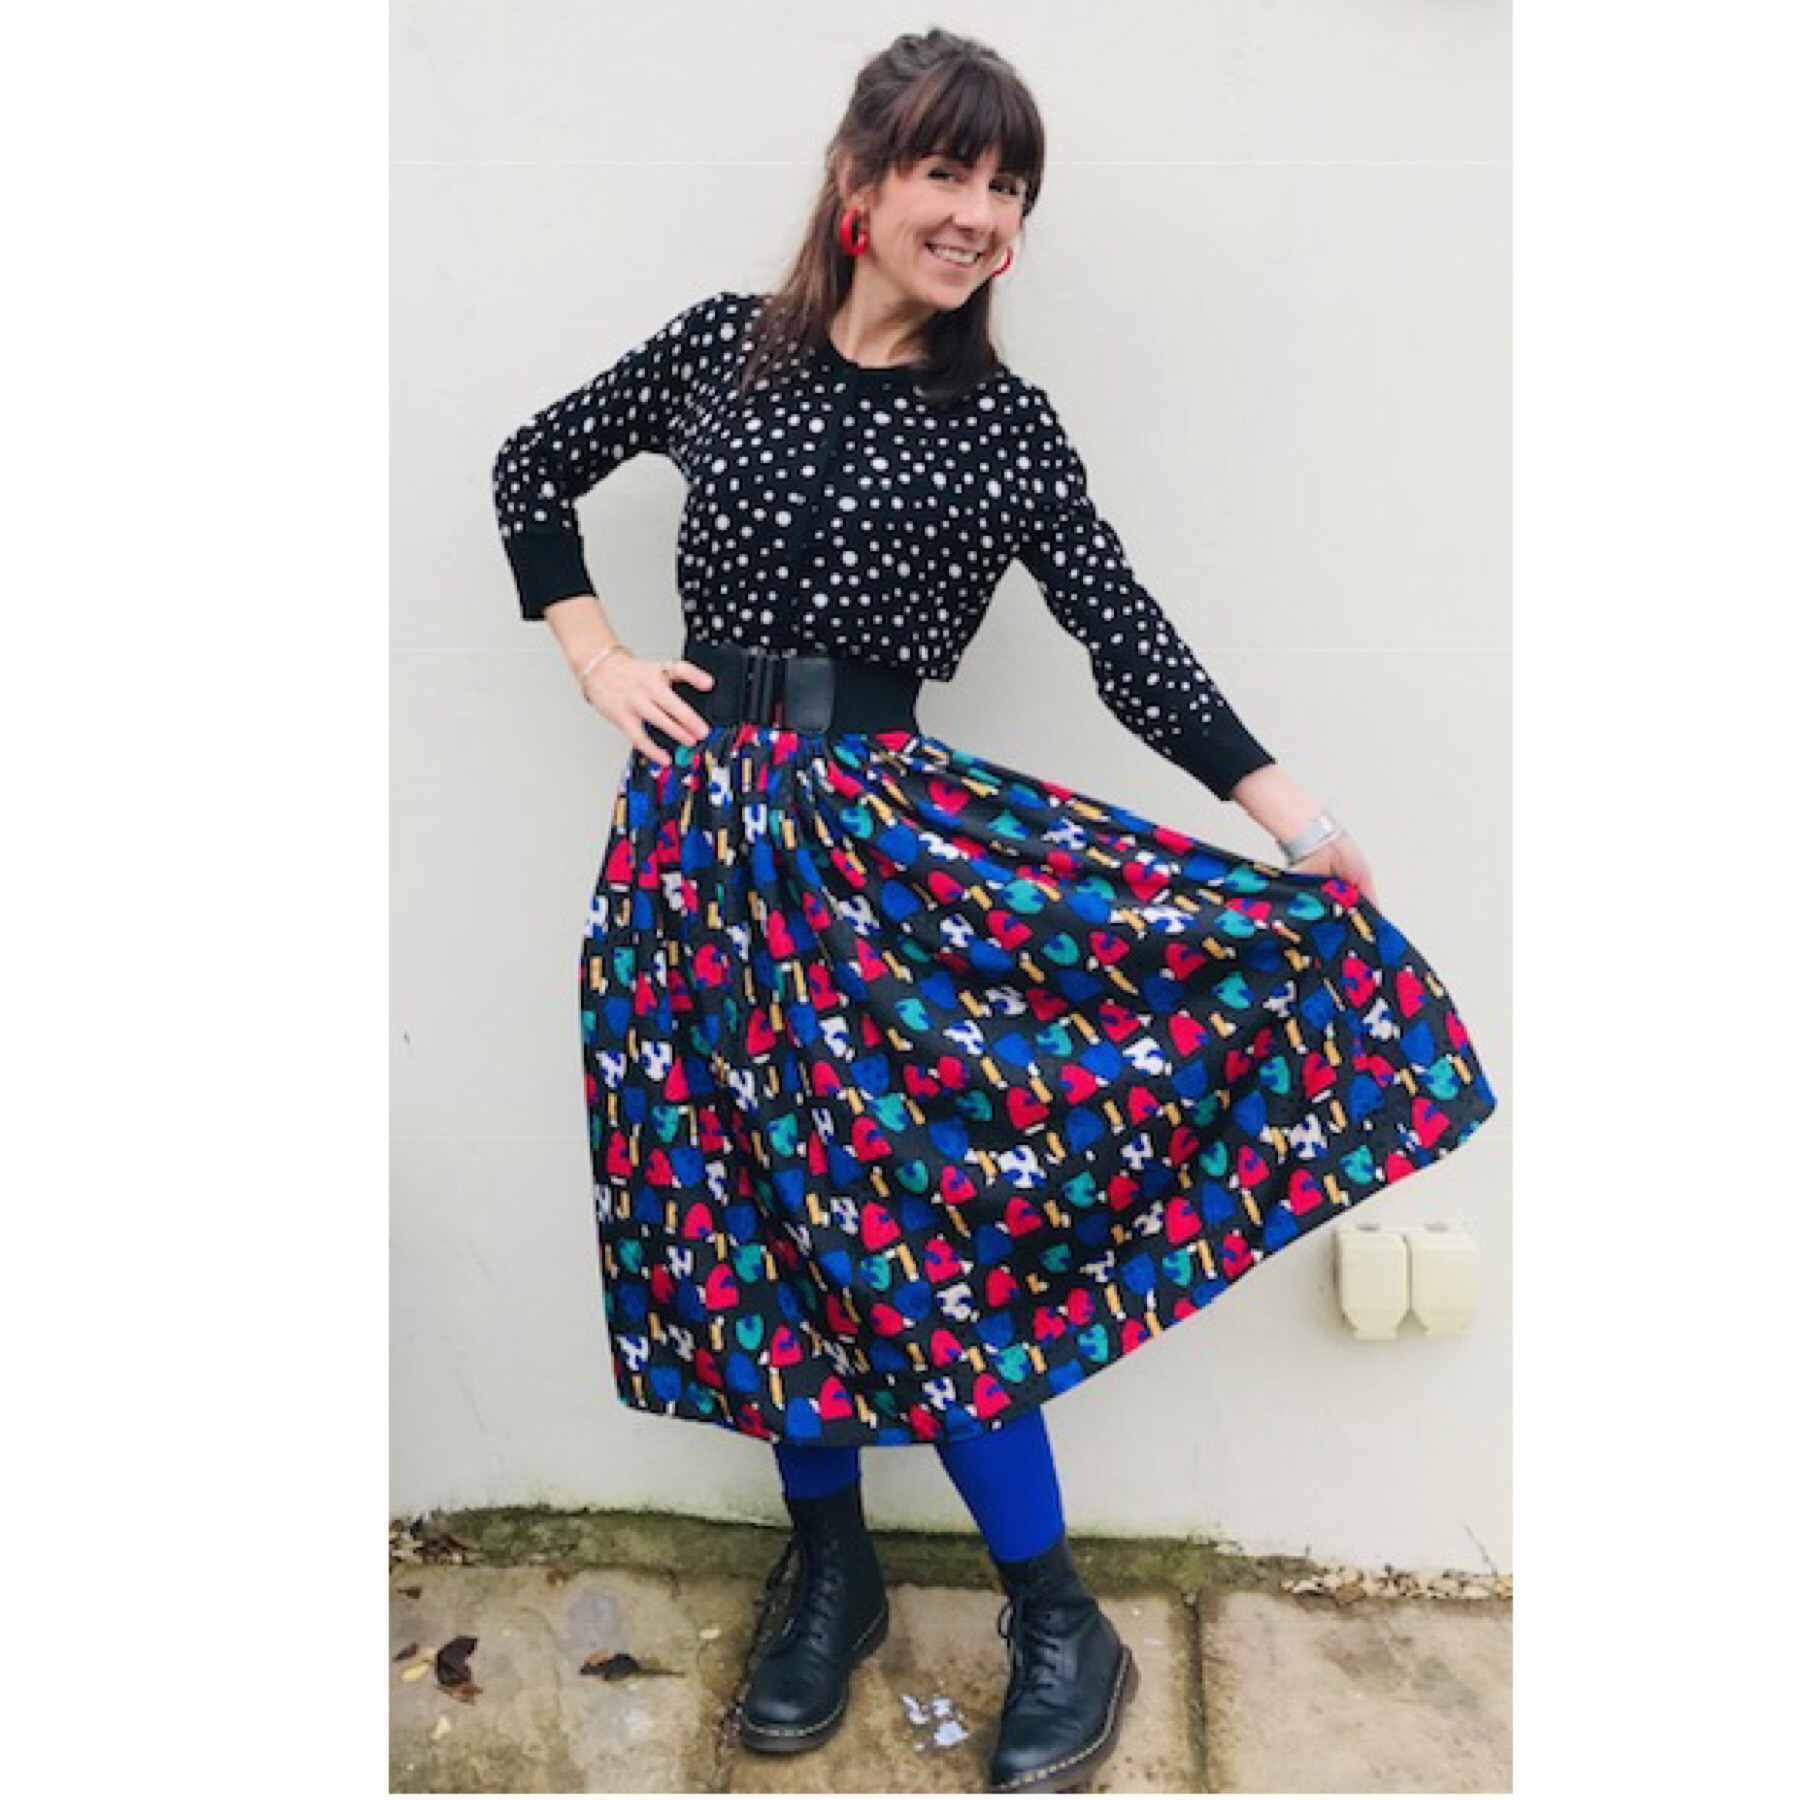 Ayla in her Miro Full Skirt